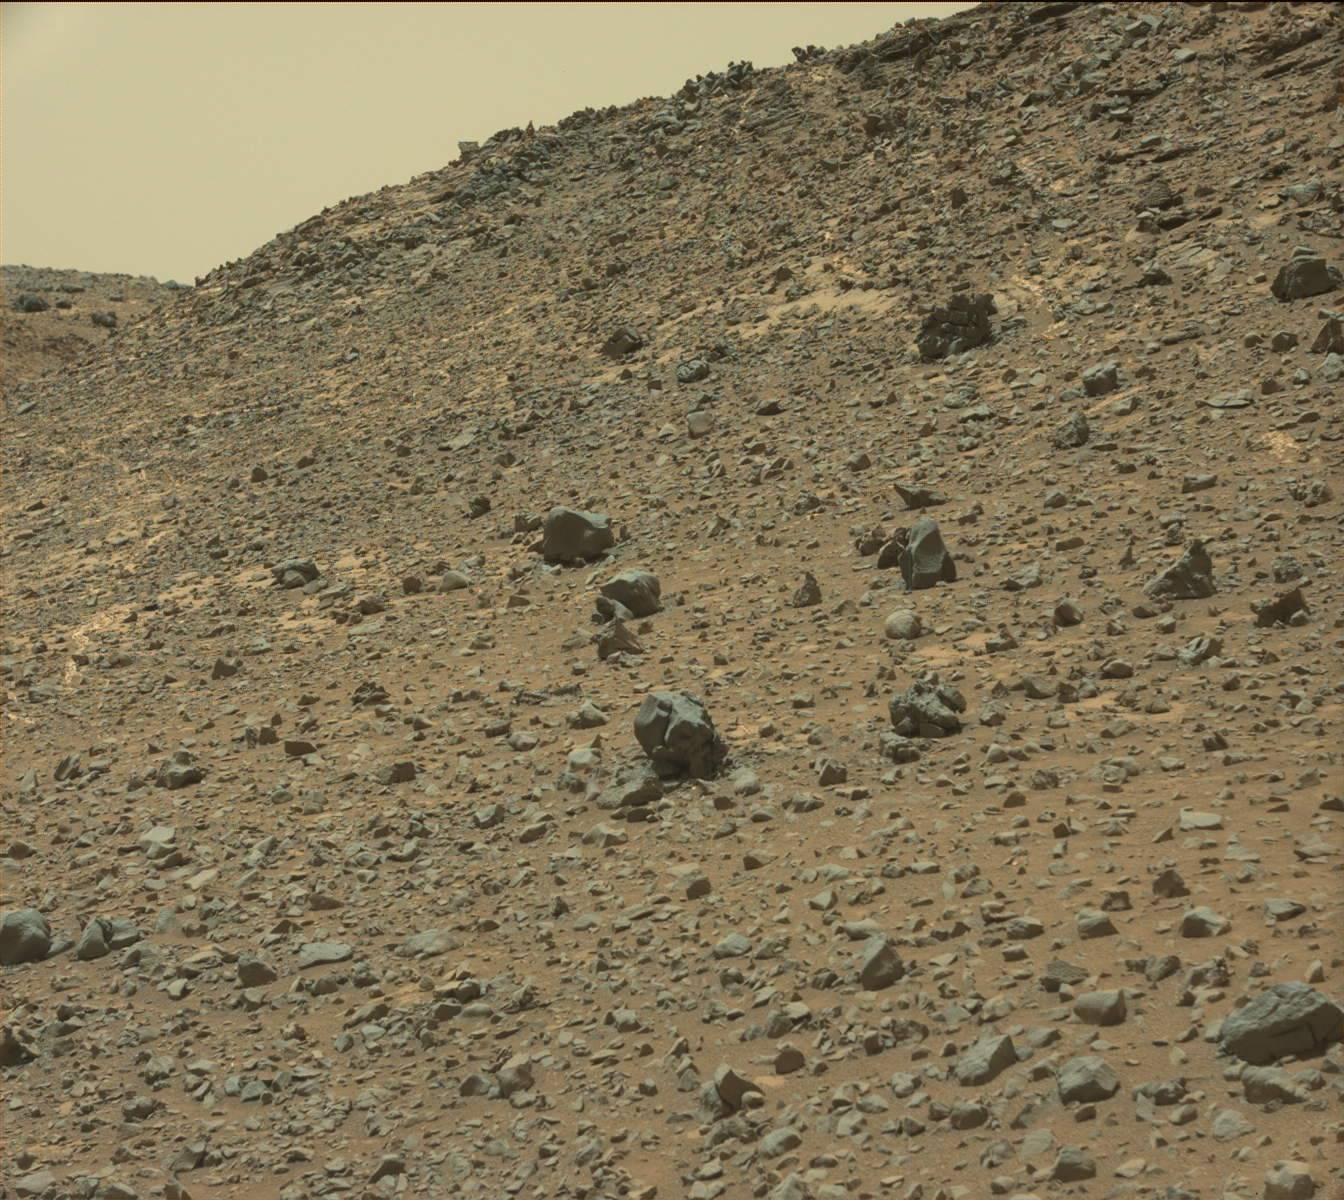 mars rovers destroyed - photo #10